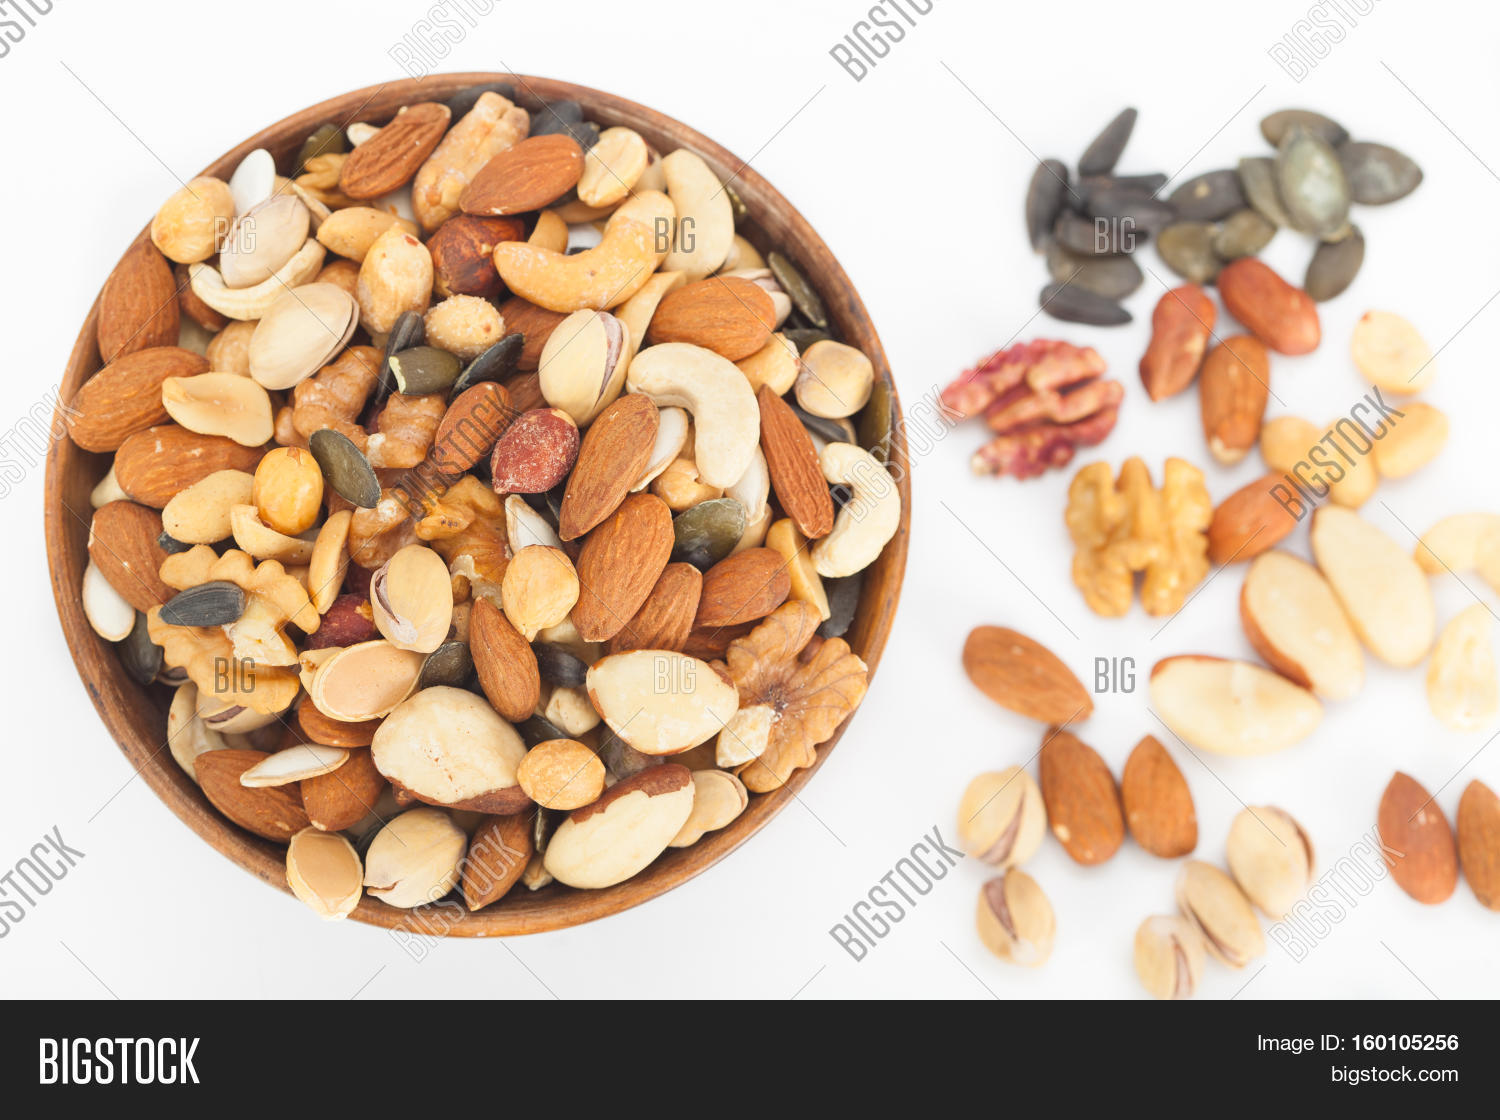 Mixed Nuts Top View: Image & Photo (Free Trial)   Bigstock